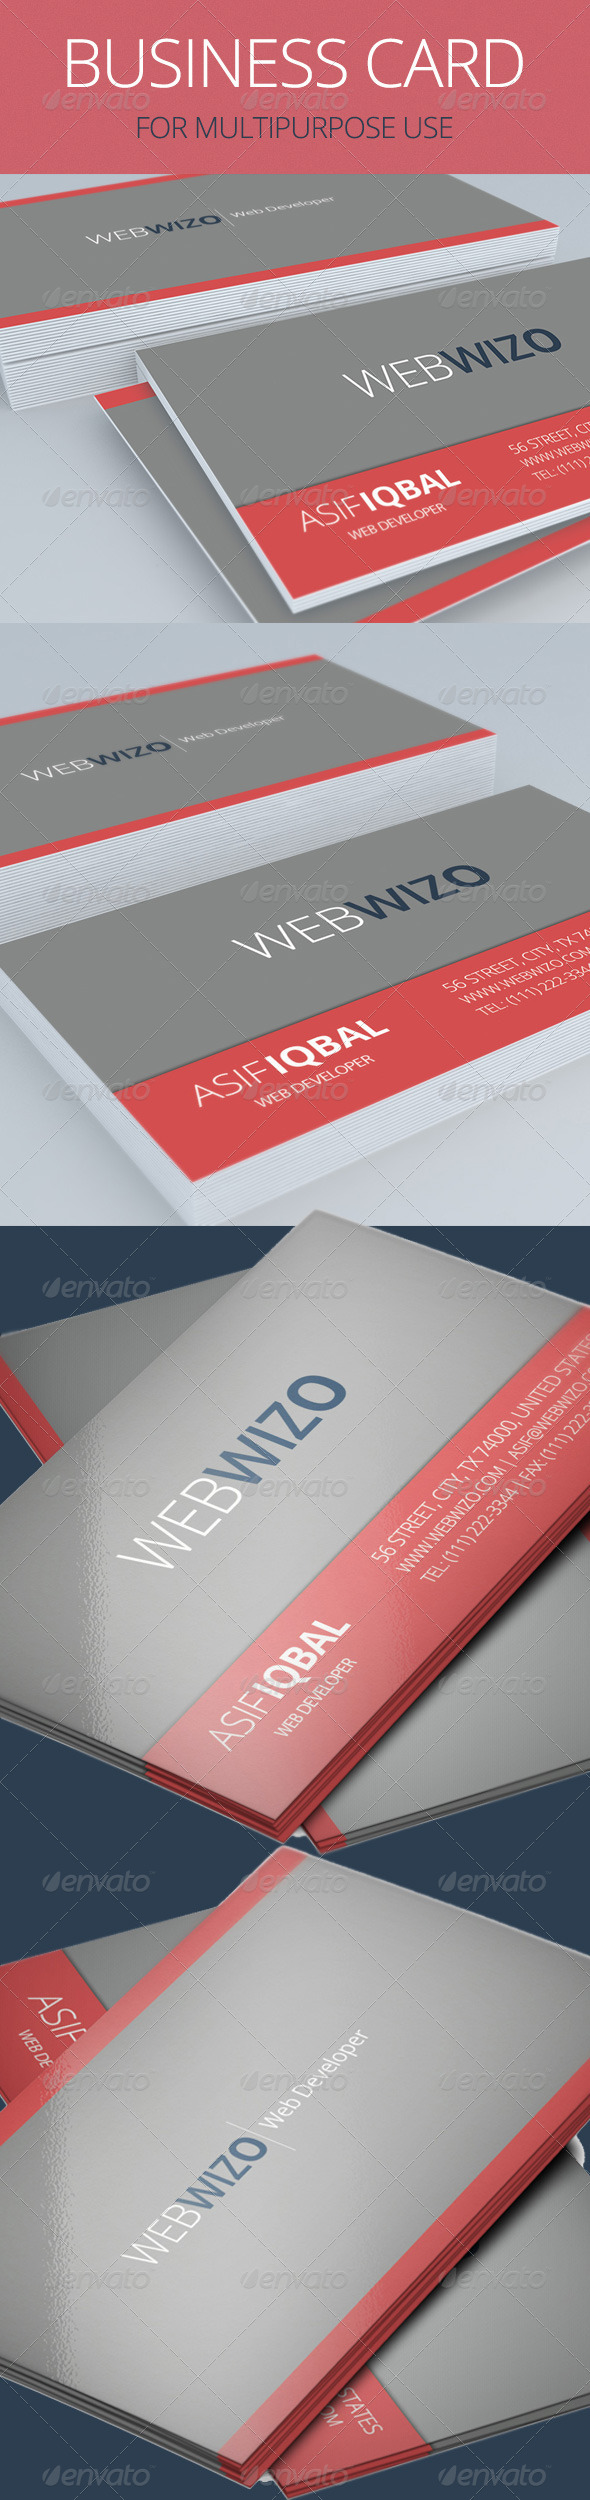 Multipurpose Business Card - Print Templates